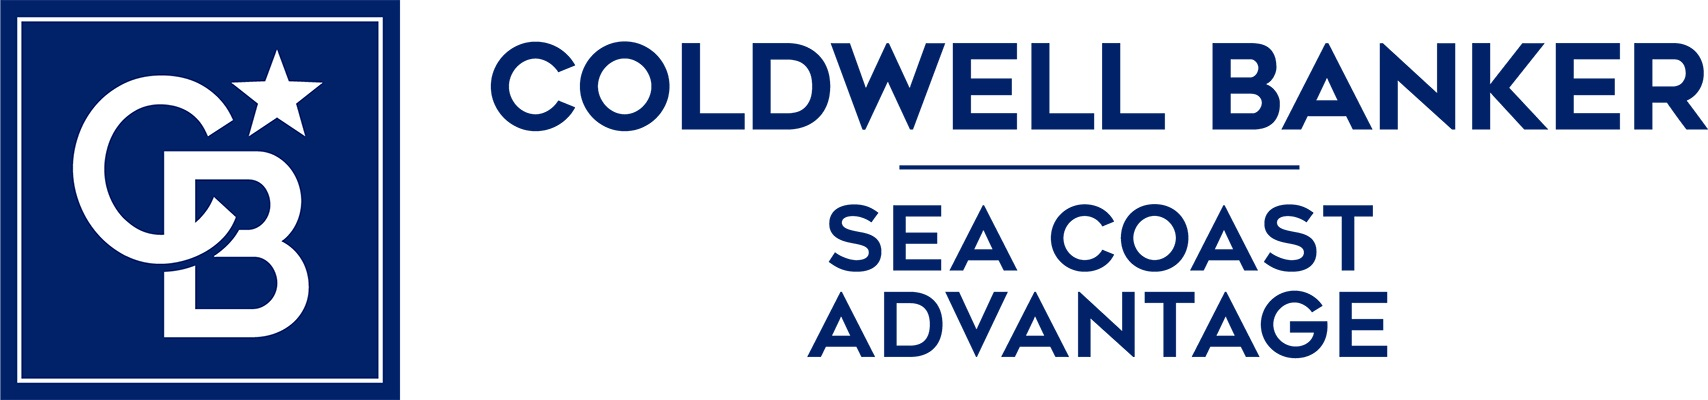 Katarina Epps - Coldwell Banker Sea Coast Advantage Realty